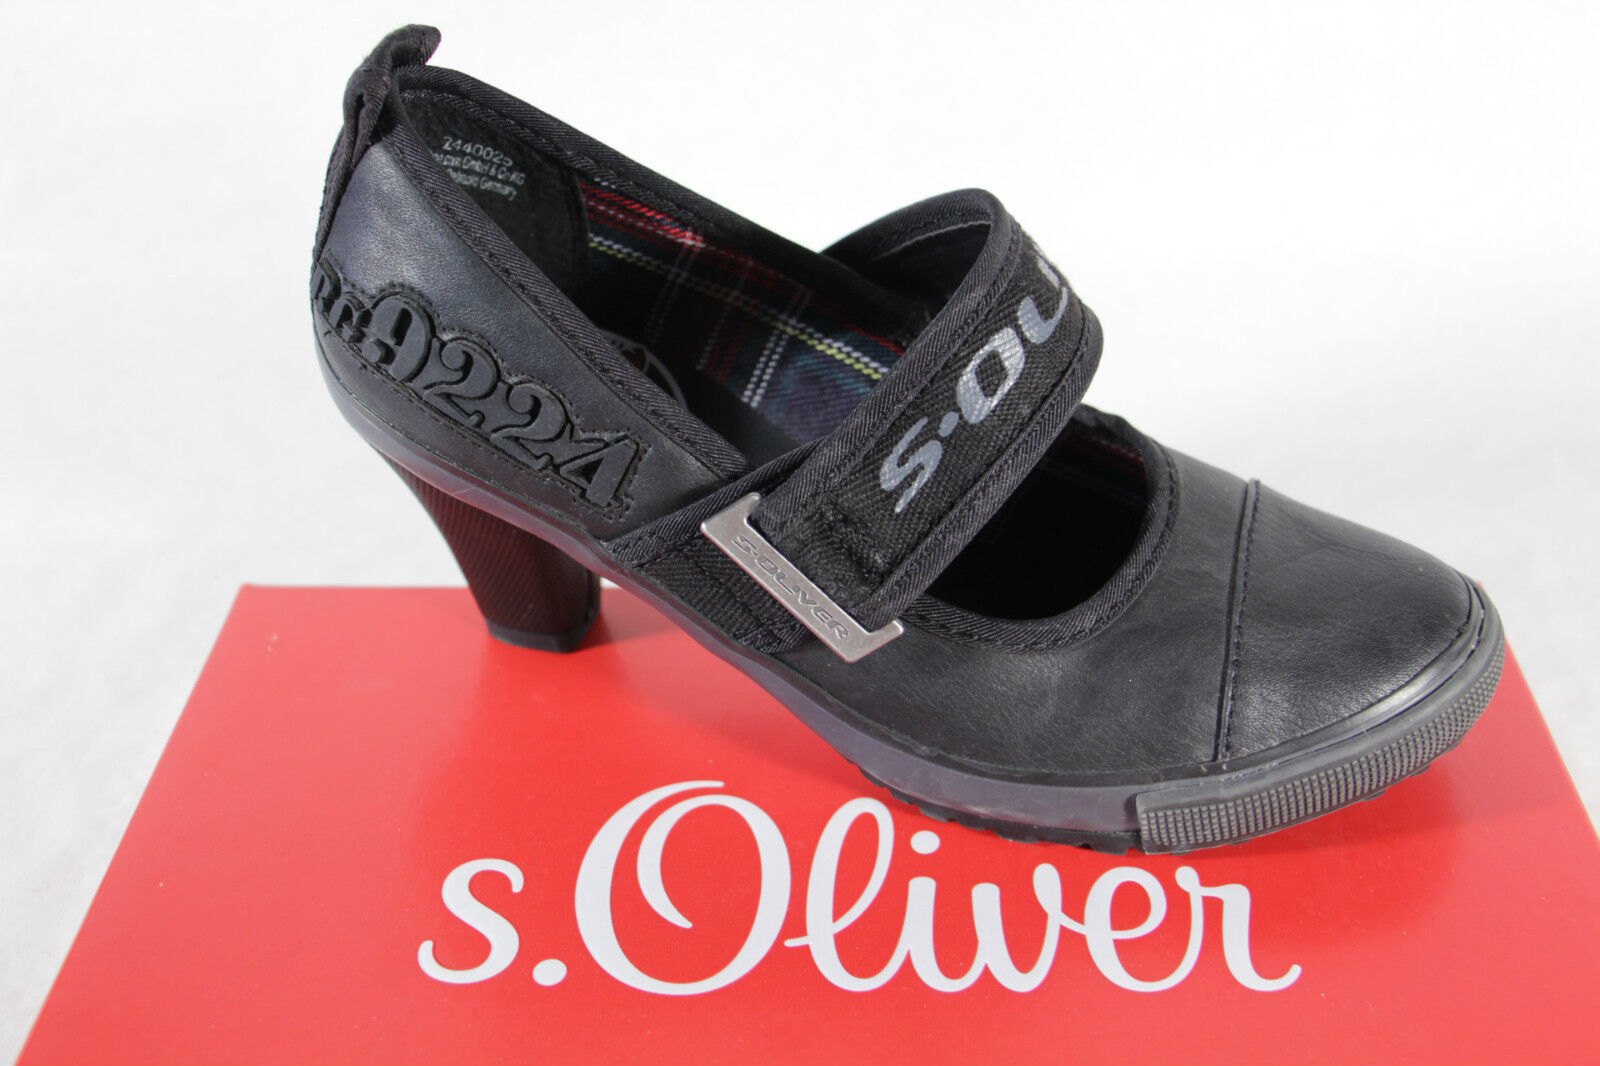 S.Oliver Court Shoes, Black, Leather Insole, NEW